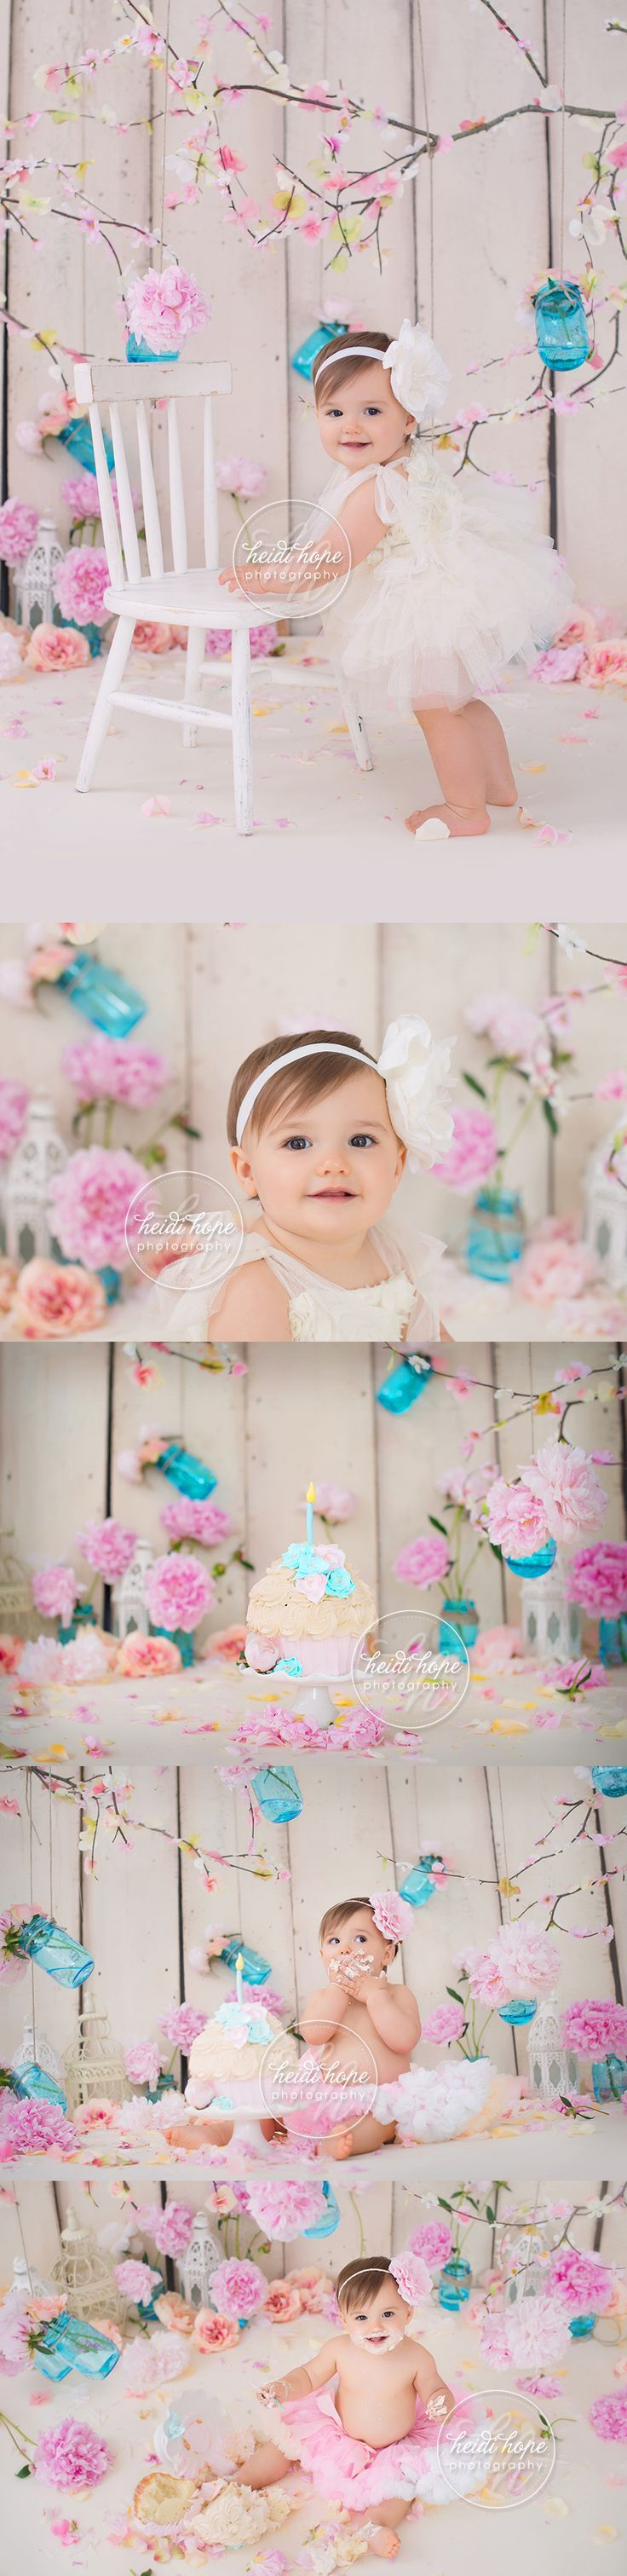 first birthday cakesmash shabby chic with flowers and outdoor family portraits2